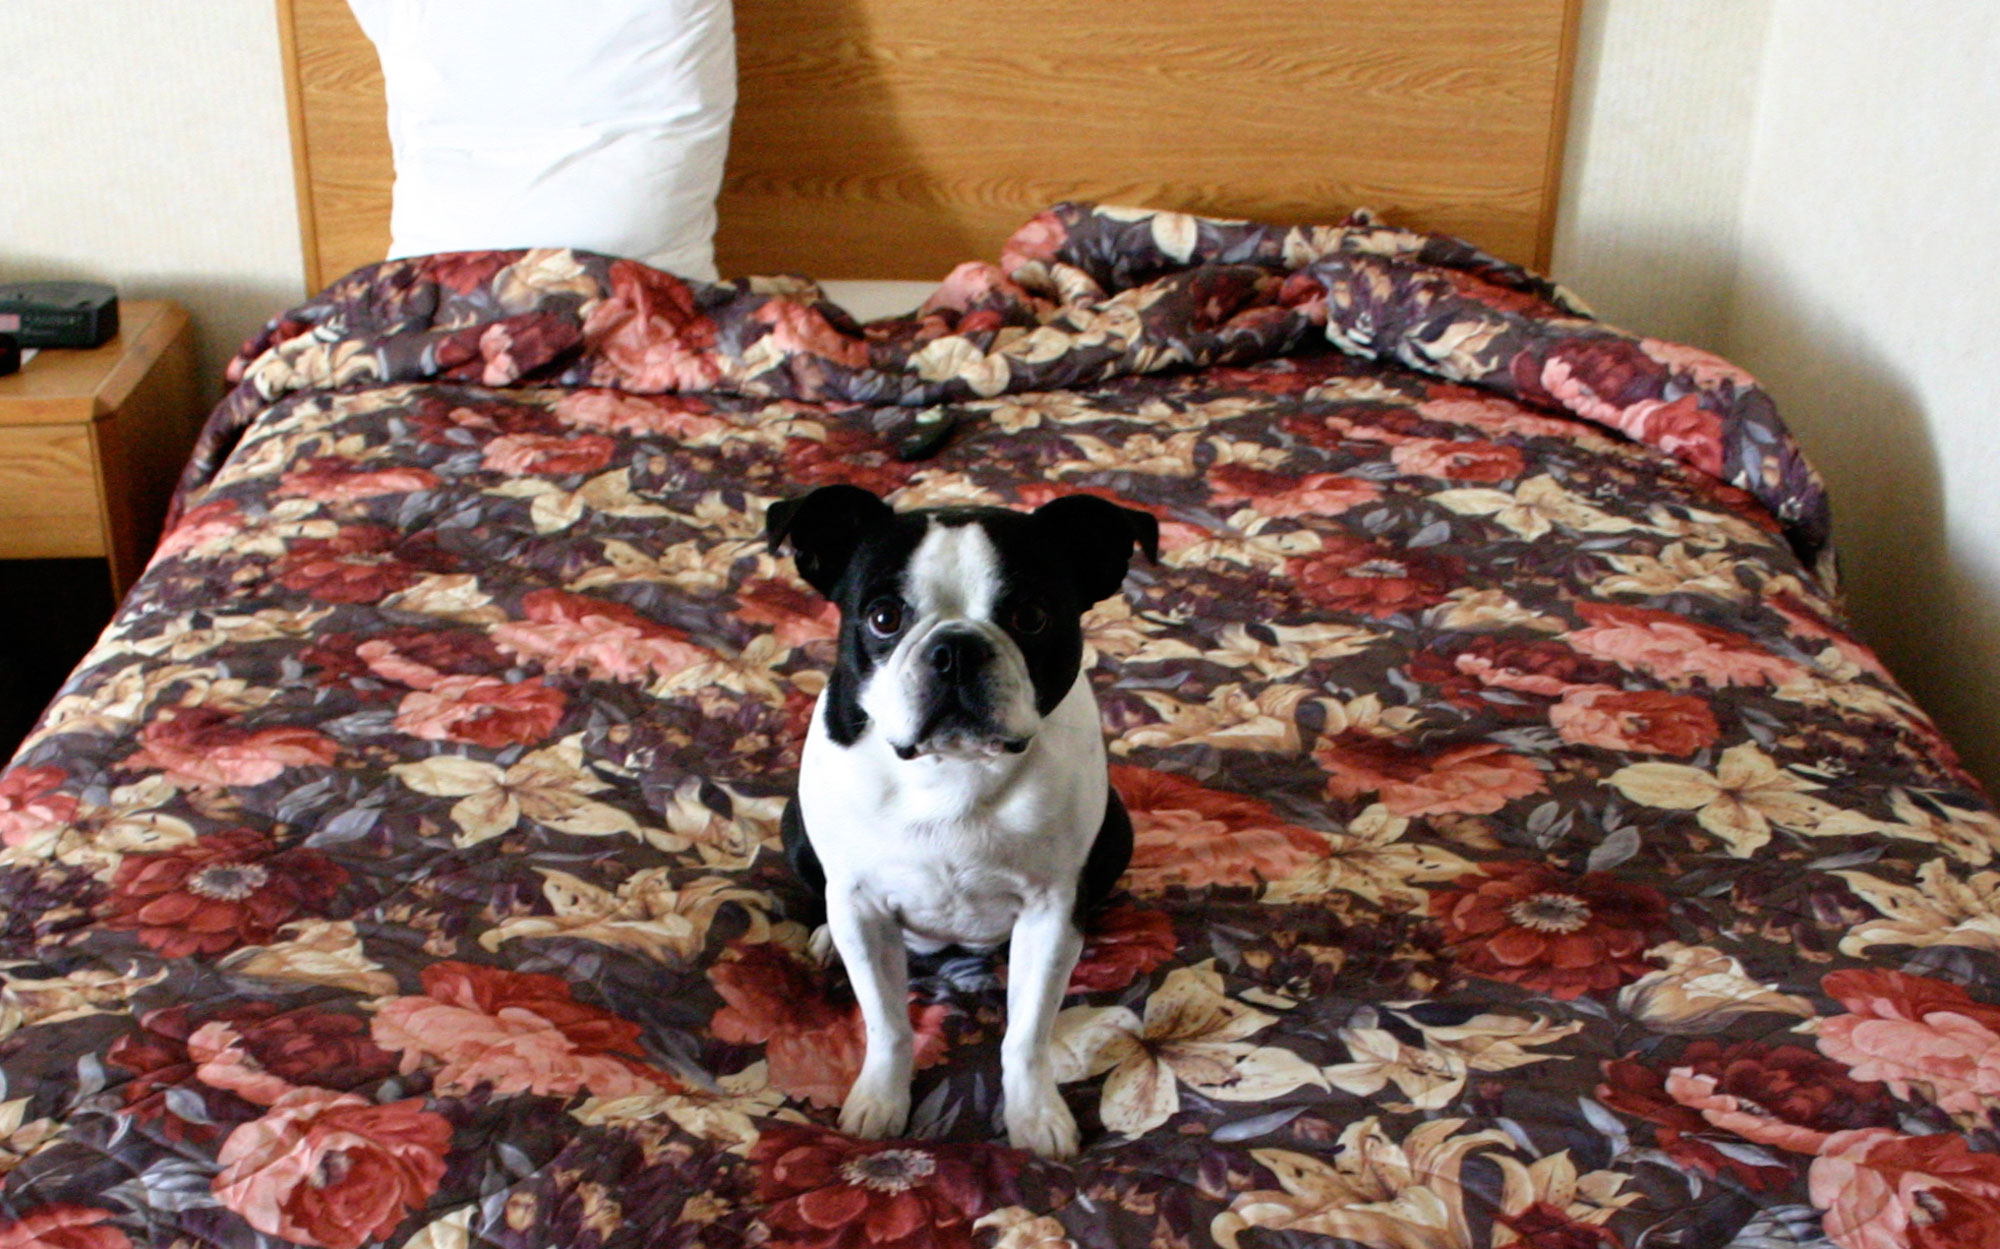 Dog Friendly Cottages and Villas for Your Holiday